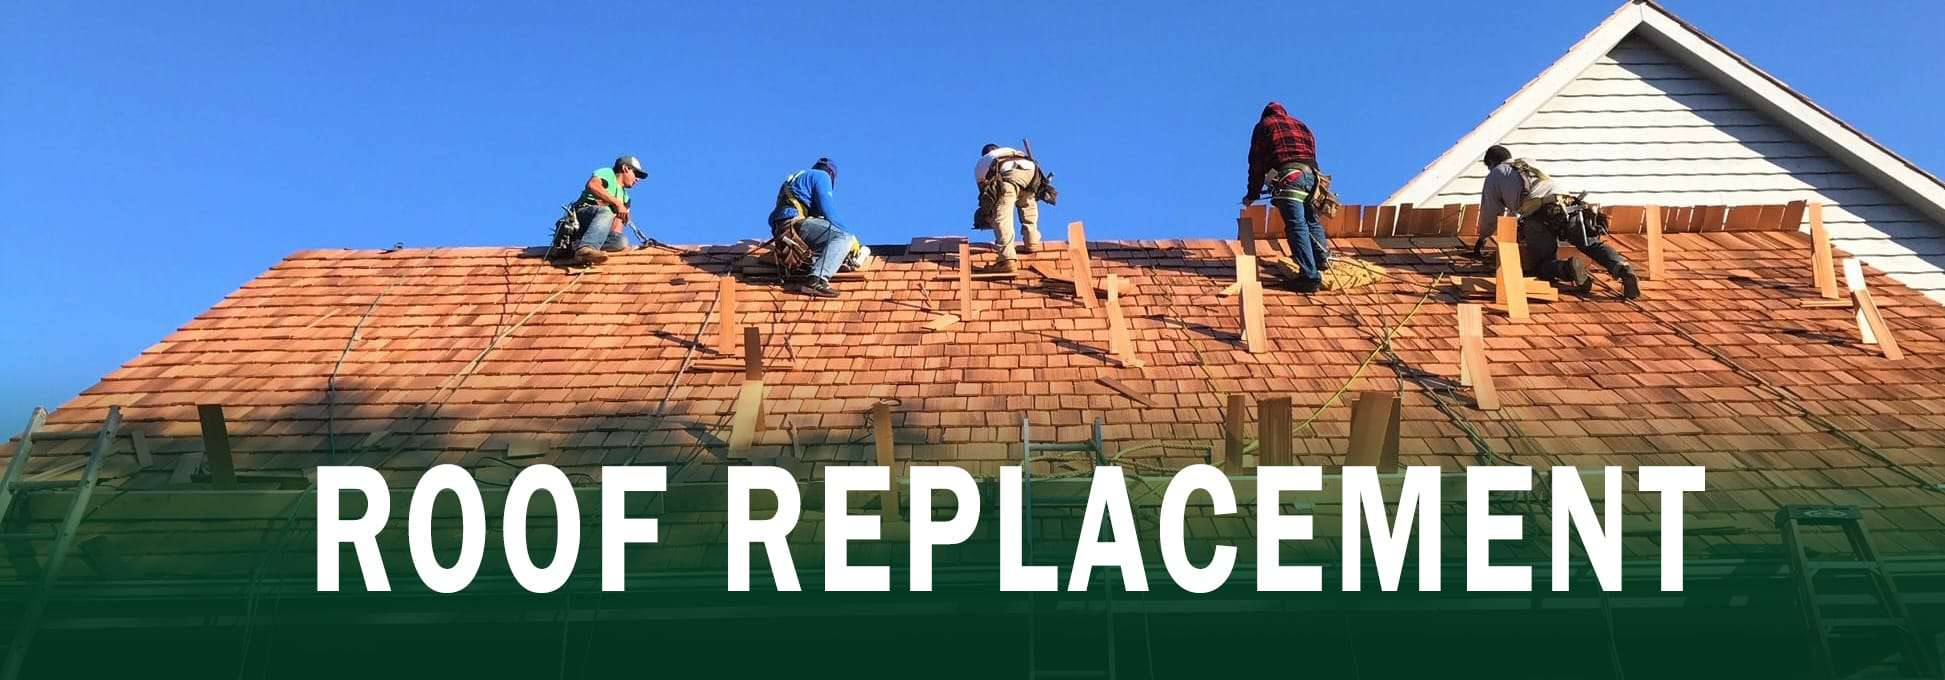 Roof replacement in Naperville, IL